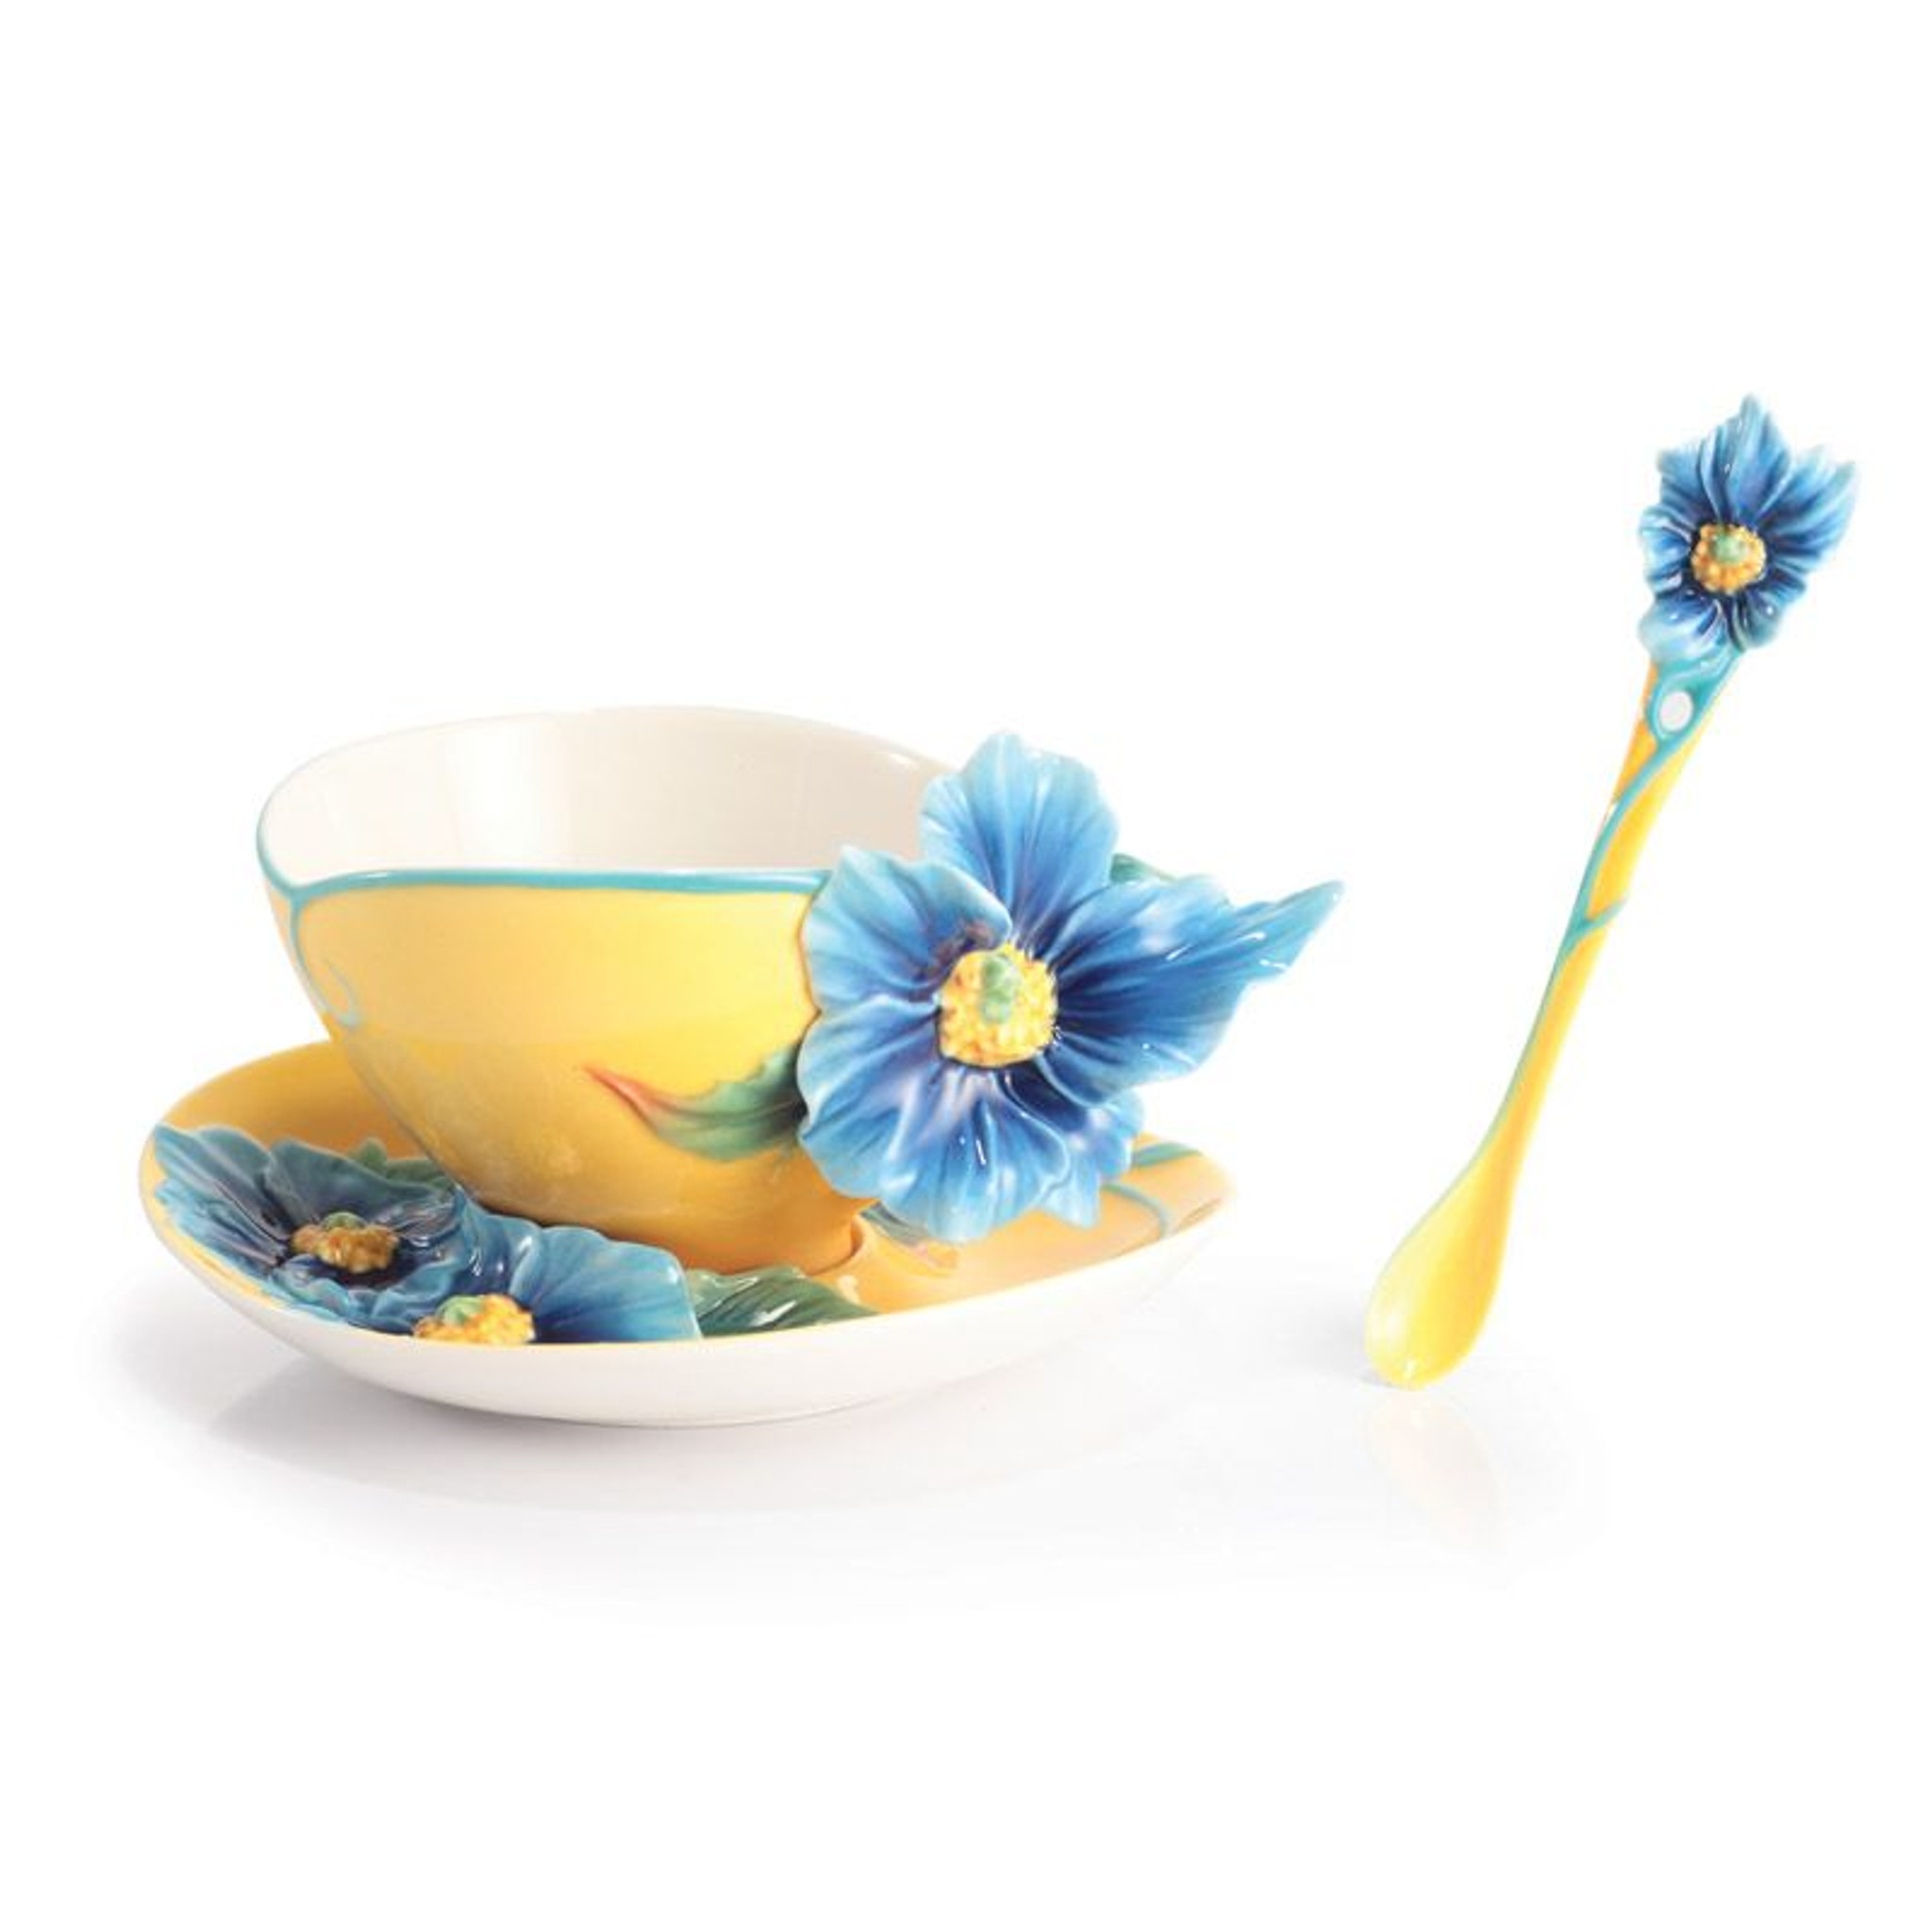 Franz Porcelain Strength And Will Blue Poppy Cup Saucer Spoon Set FZ6